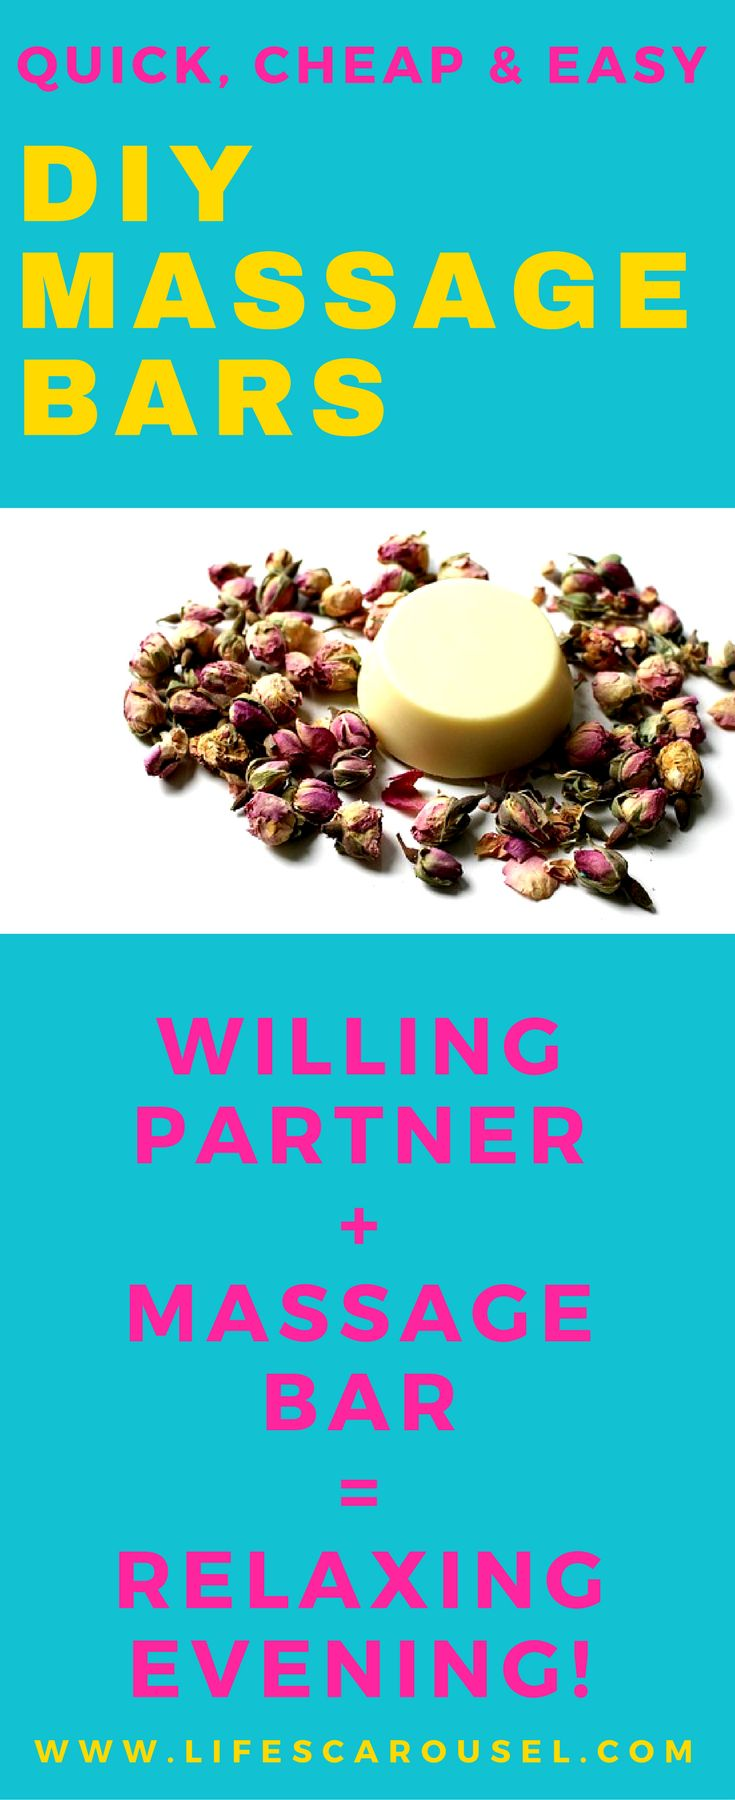 Need to relax? Try making this LUSH inspired Massage Bar. Quick and Easy!